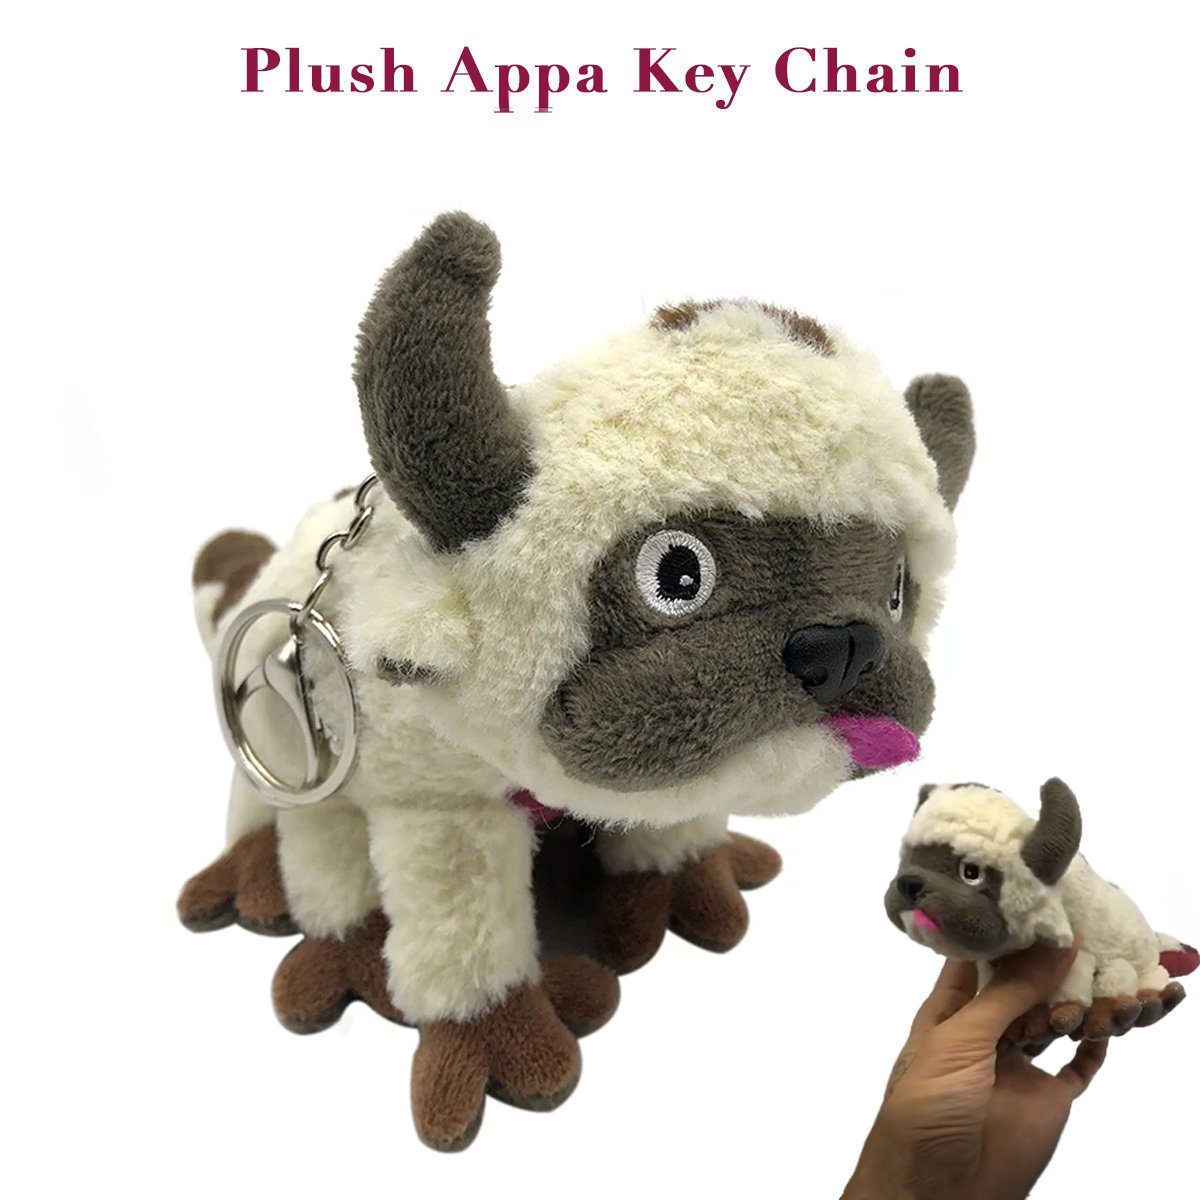 Plush Appa Key-Chain